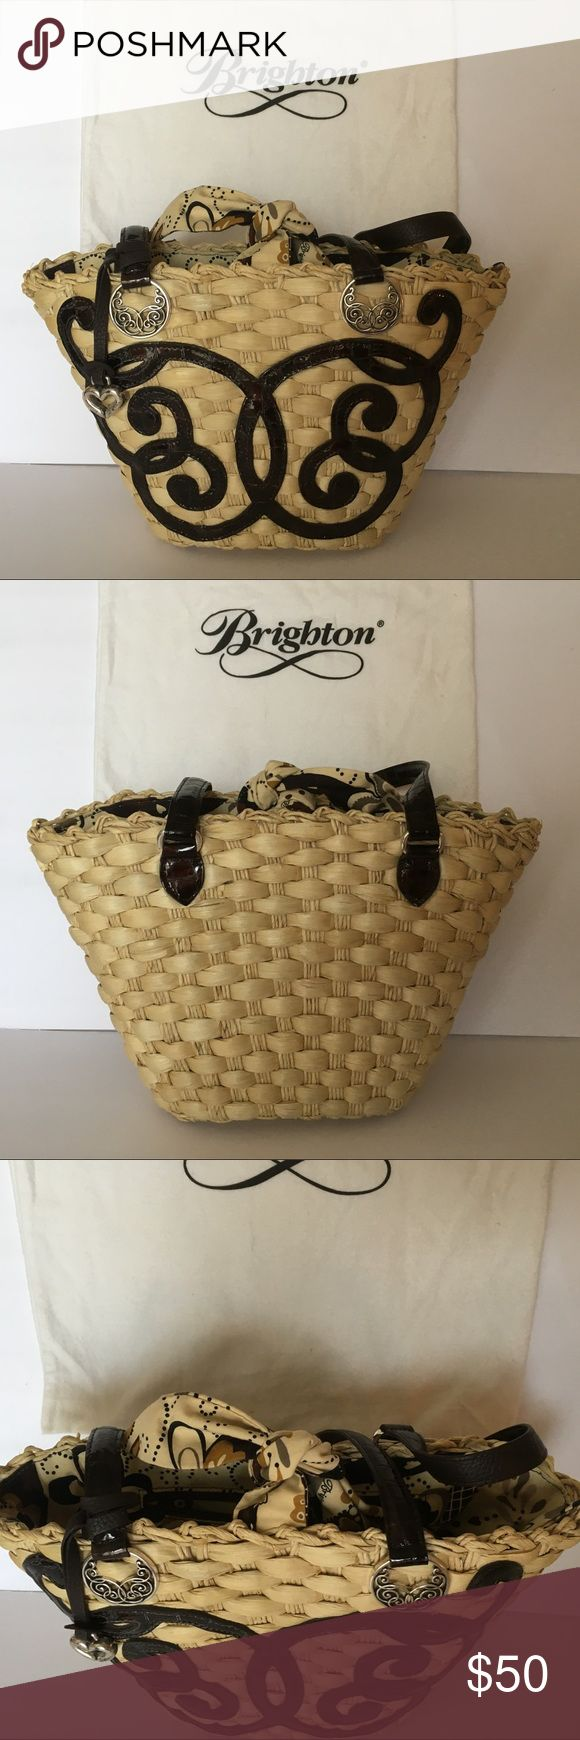 """Brighton Scroll Straw Tote Brighton Lyric Scroll Straw Tote $50- retails $200  EUC, a favorite! Authentic Brighton, purchased at Brighton store. Handkerchief knot closure, dark brown leather details, silver hardware. Well cared for, clean, non smoking home. 9x12""""  Dust bag included.   Cross posted.  No español, por favor. Brighton Bags Totes"""